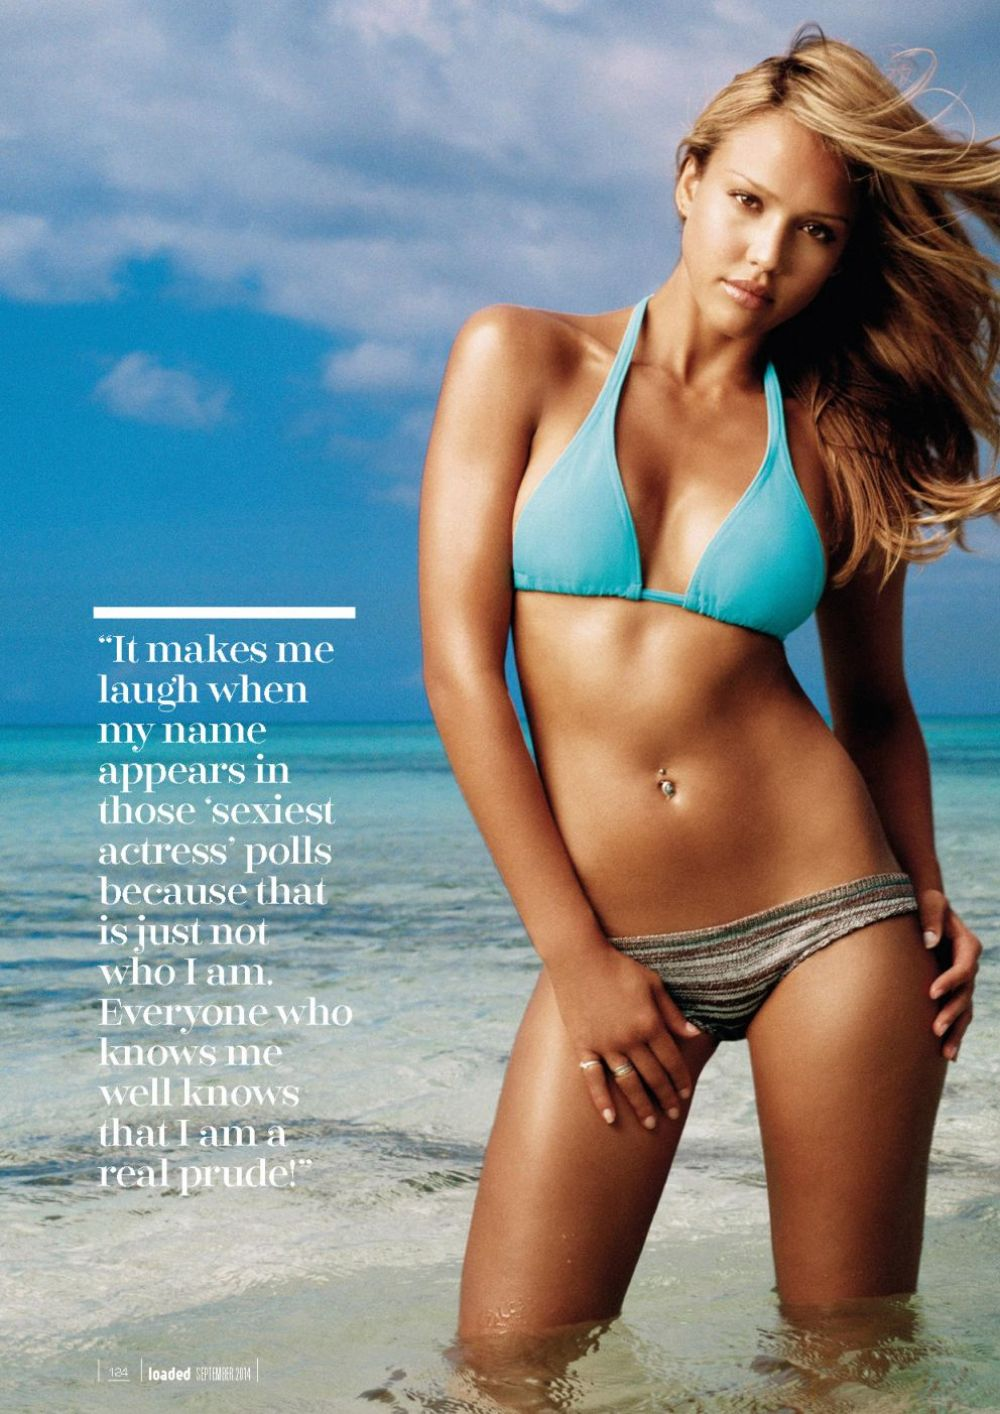 JESSICA ALBA in Loaded Magazine, September 2014 Issue